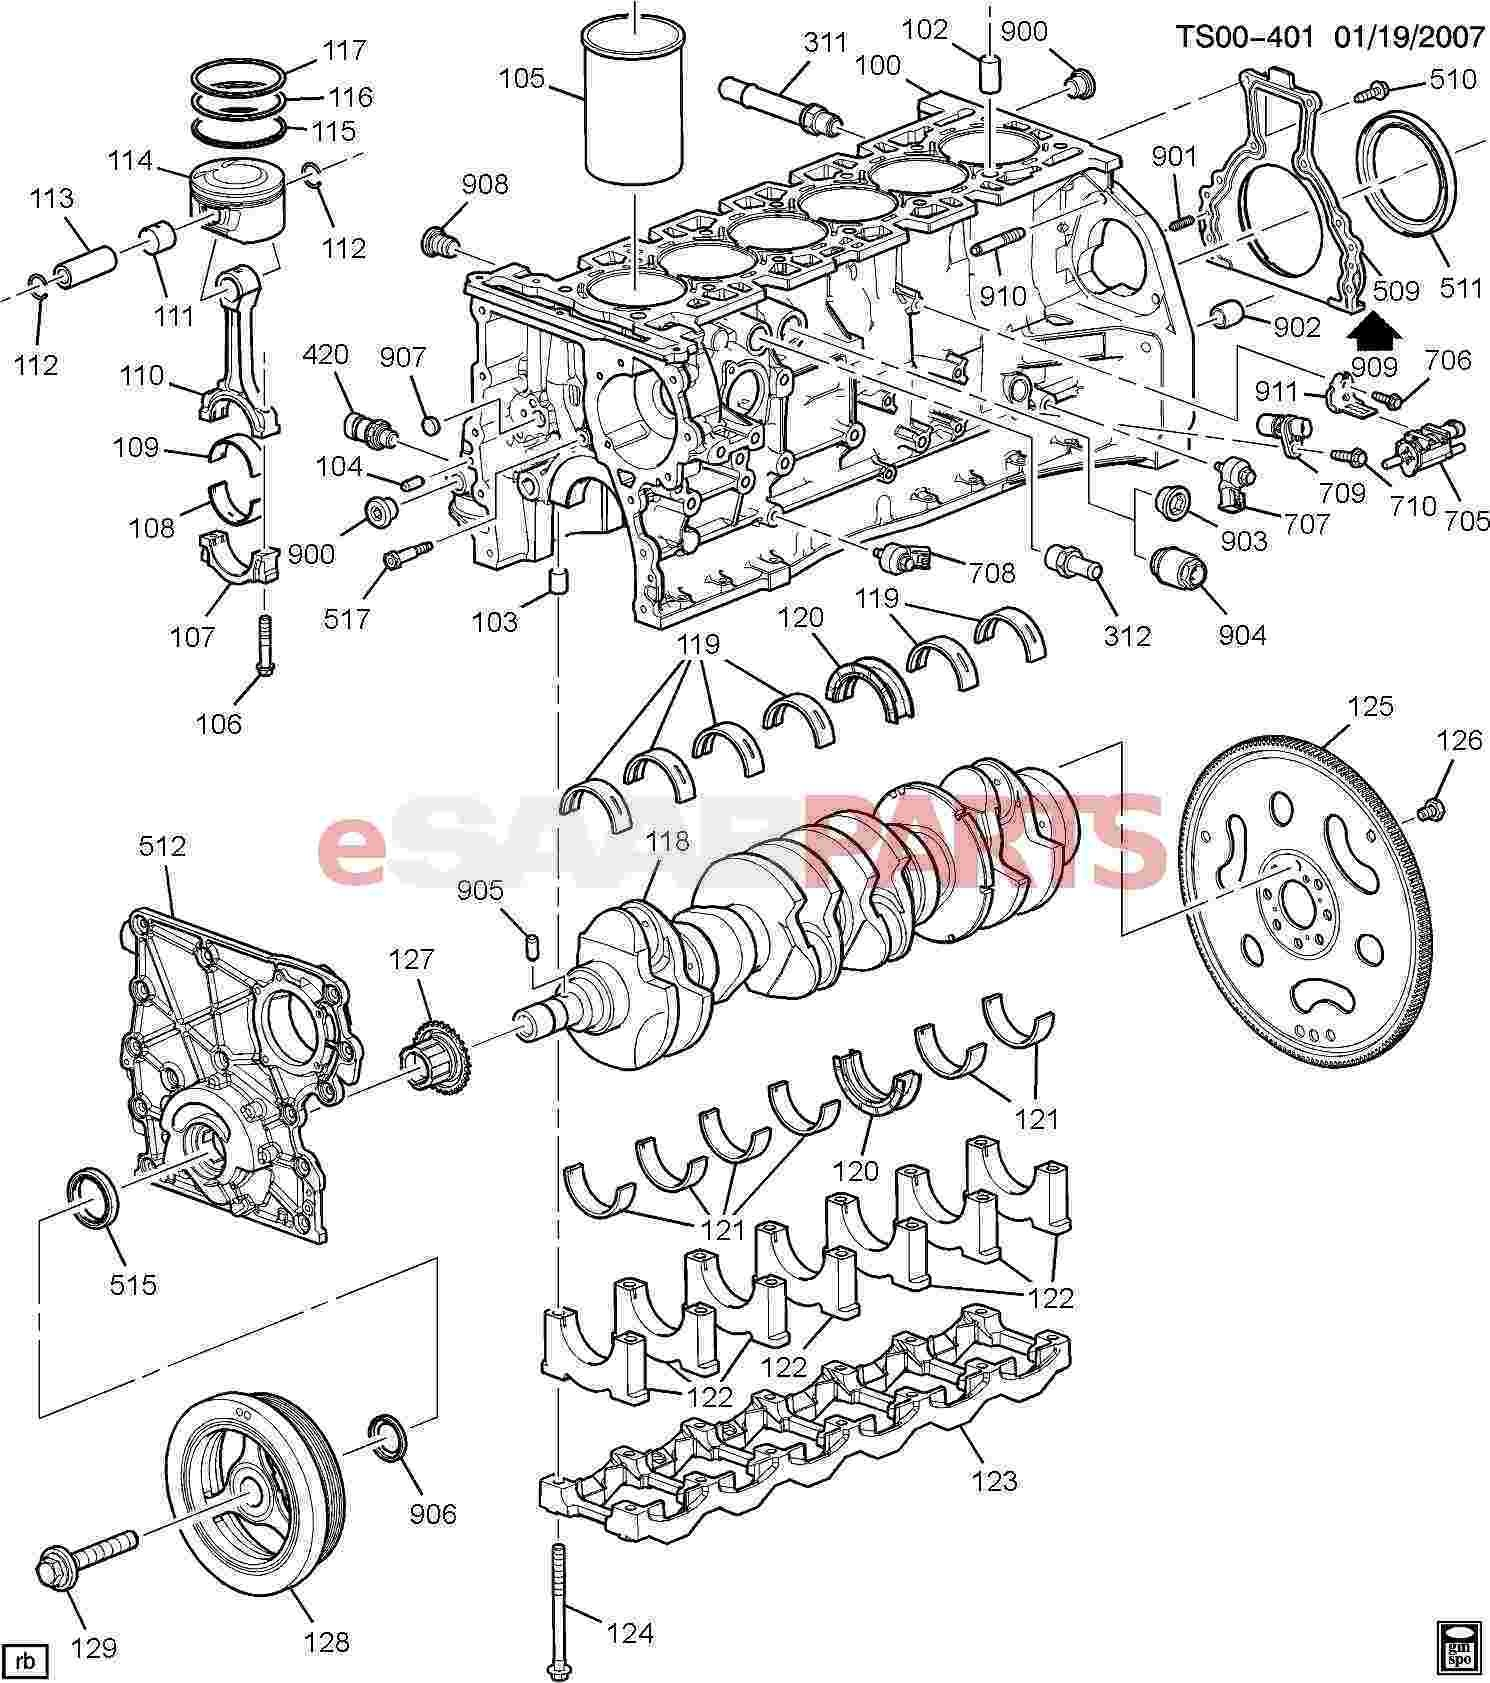 gm parts diagrams with part numbers esaabparts saab 9 7x engine rh detoxicrecenze com GMC Engine Parts Diagram GM Parts and Exploded Diagrams